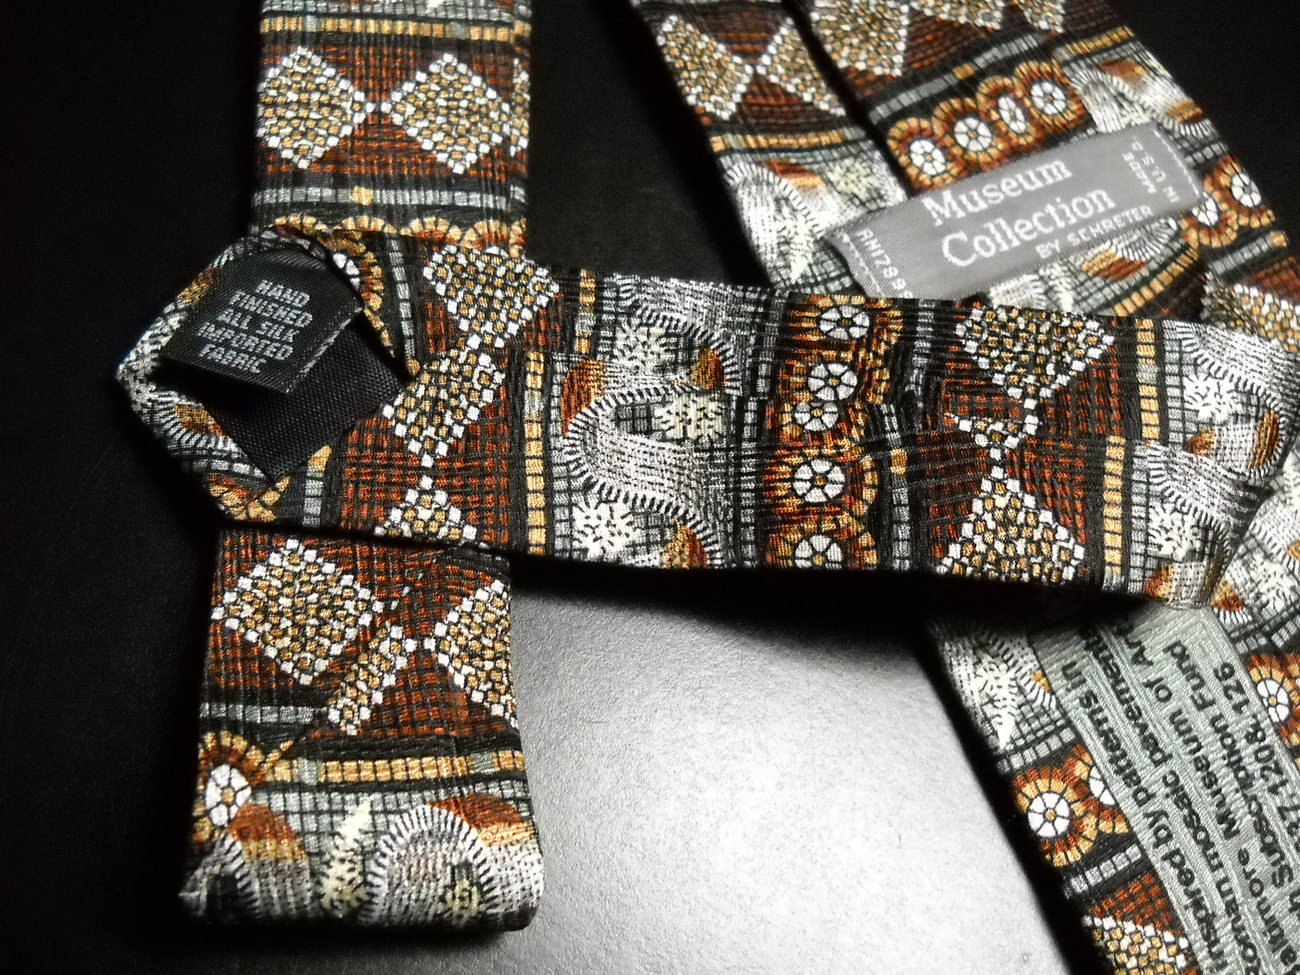 Museum Collection by Schreter Neck Tie Ancient Roman Mosaic Pavements Baltimore